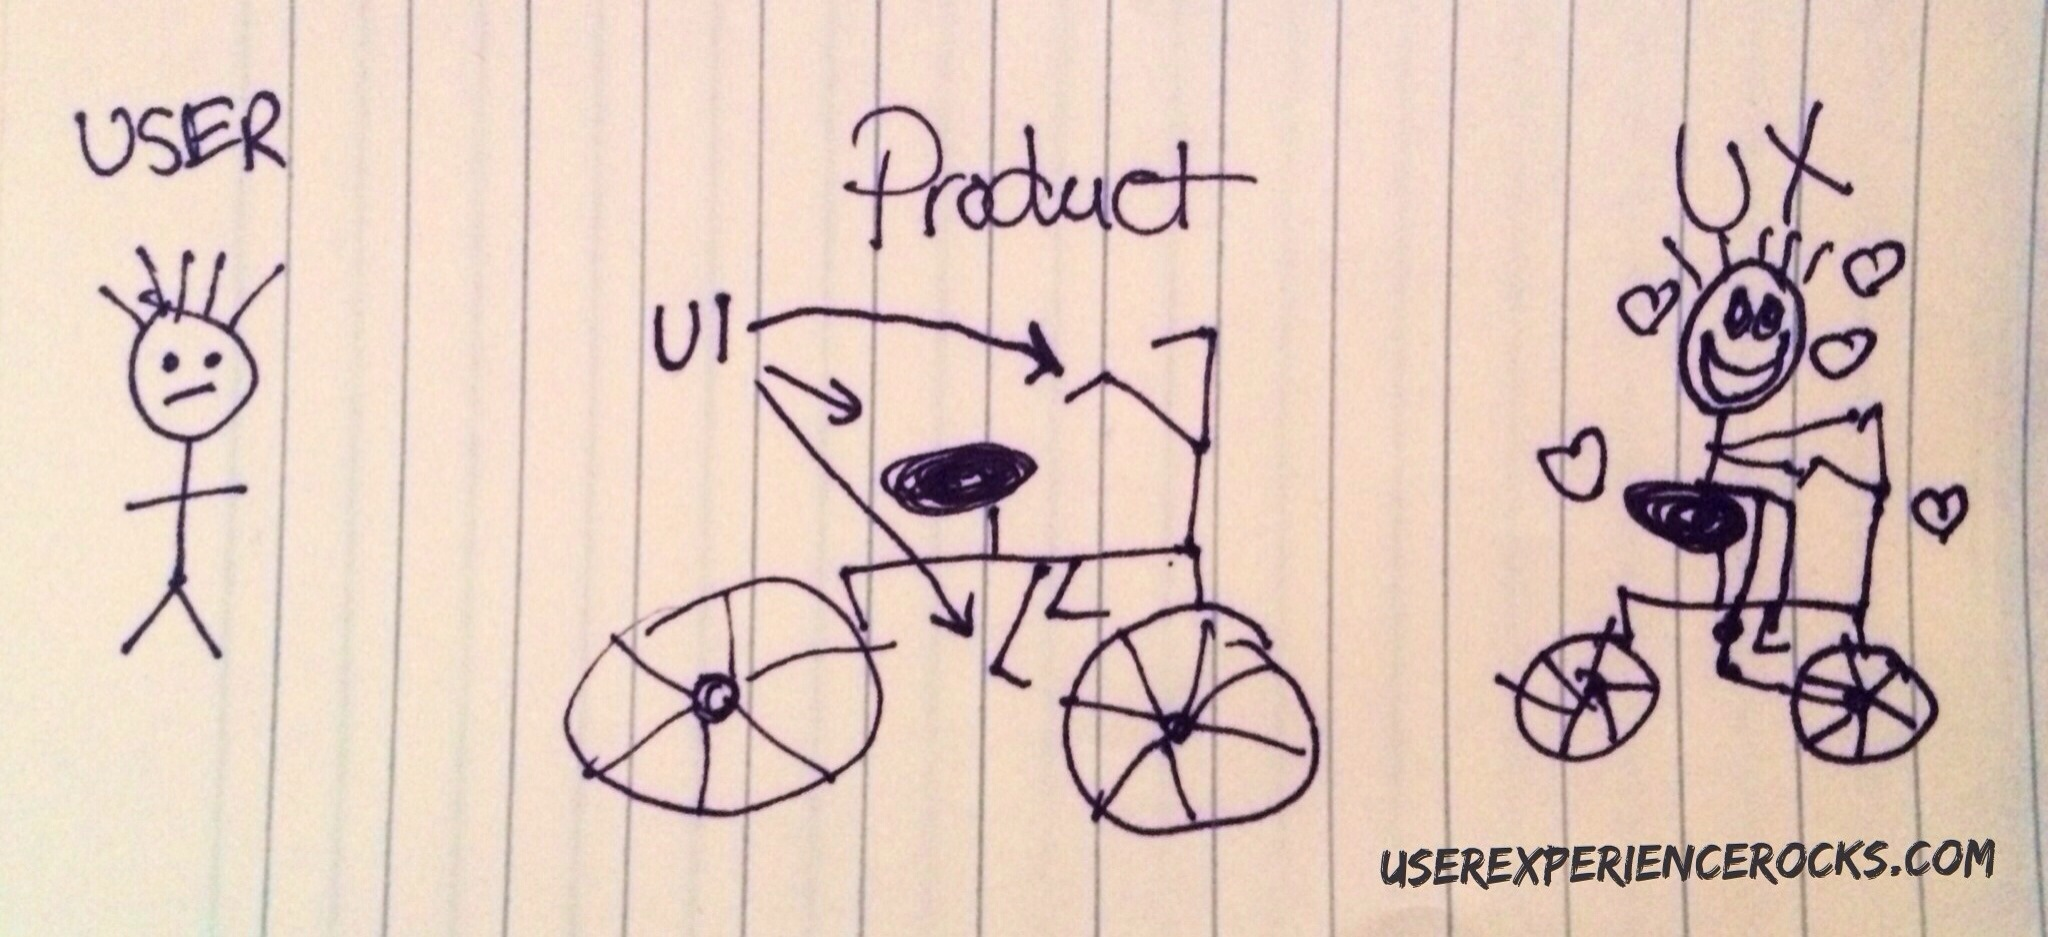 Then my kiddo asked, 'What's the difference between UX and UI?'